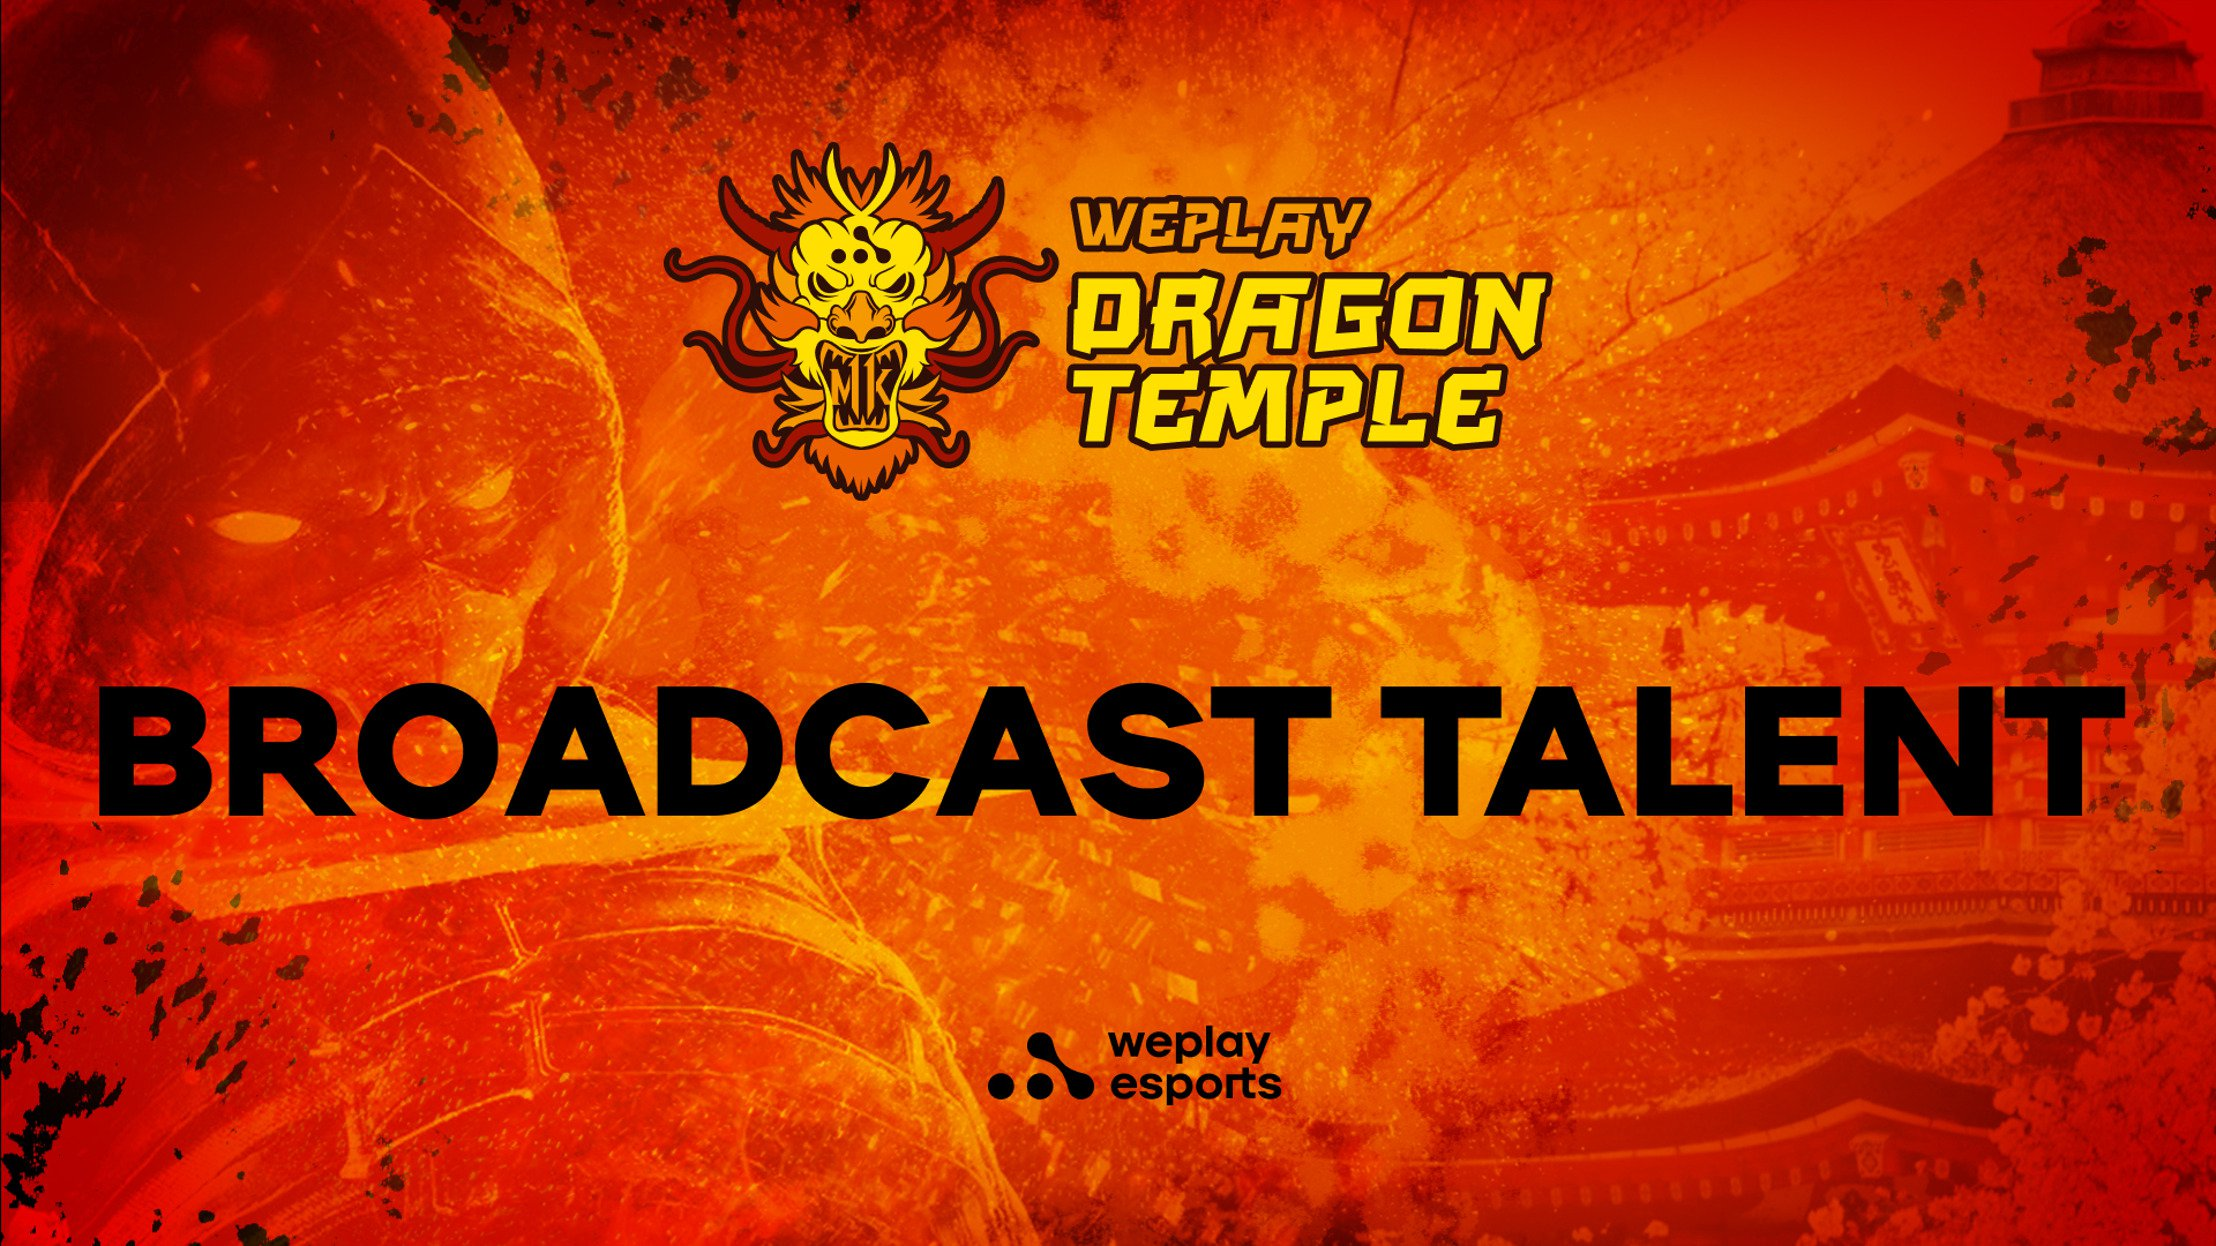 Meet the broadcast talent behind WePlay Dragon Temple